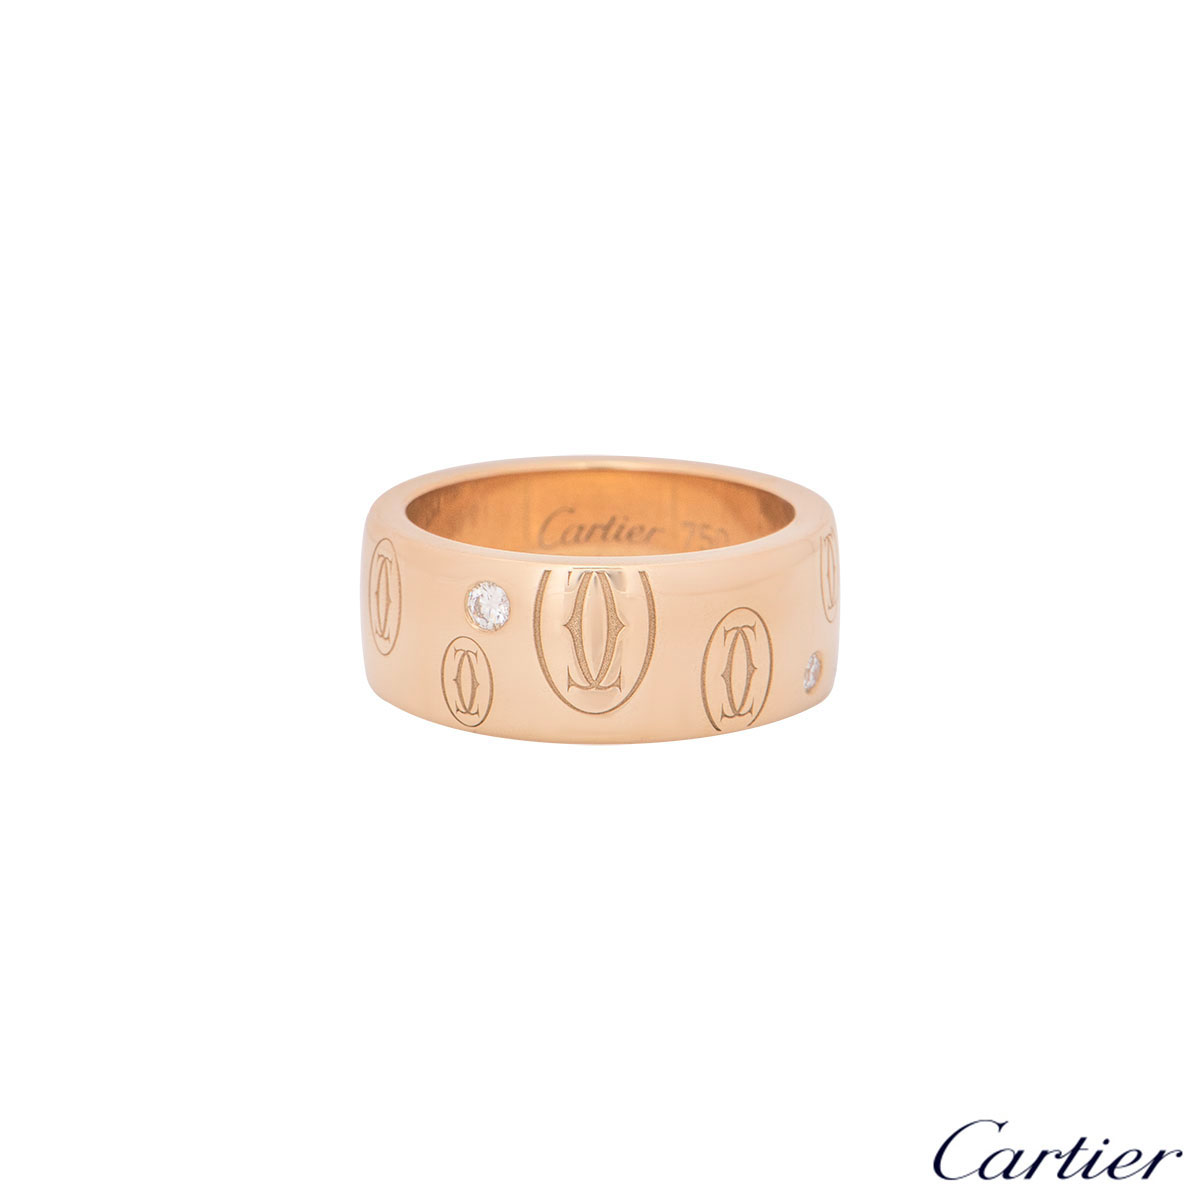 Cartier Rose Gold Diamond Set Happy Birthday Ring Size 52